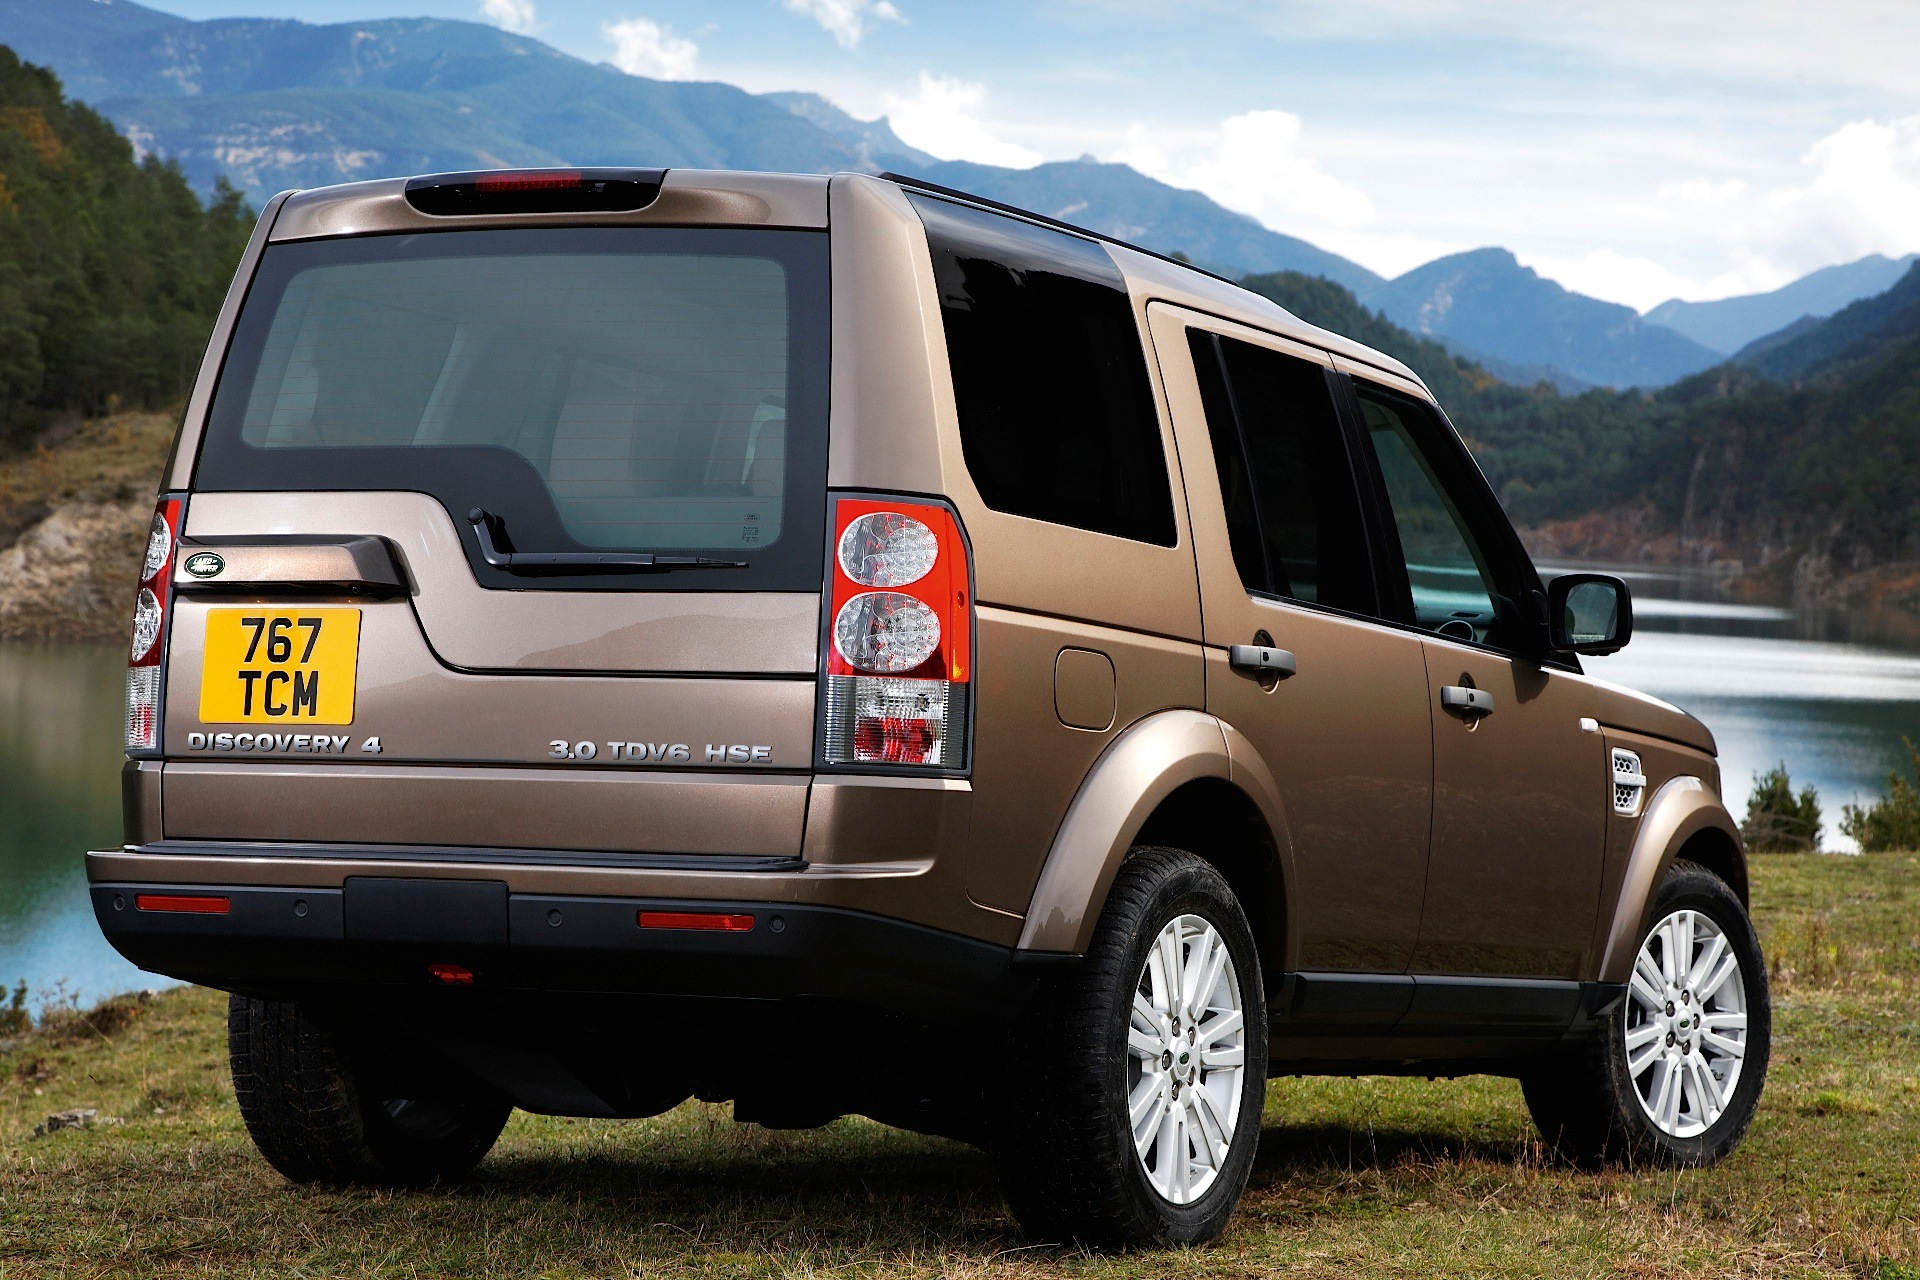 land rover discovery lr4 specs 2009 2010 2011 2012 2013 autoevolution. Black Bedroom Furniture Sets. Home Design Ideas